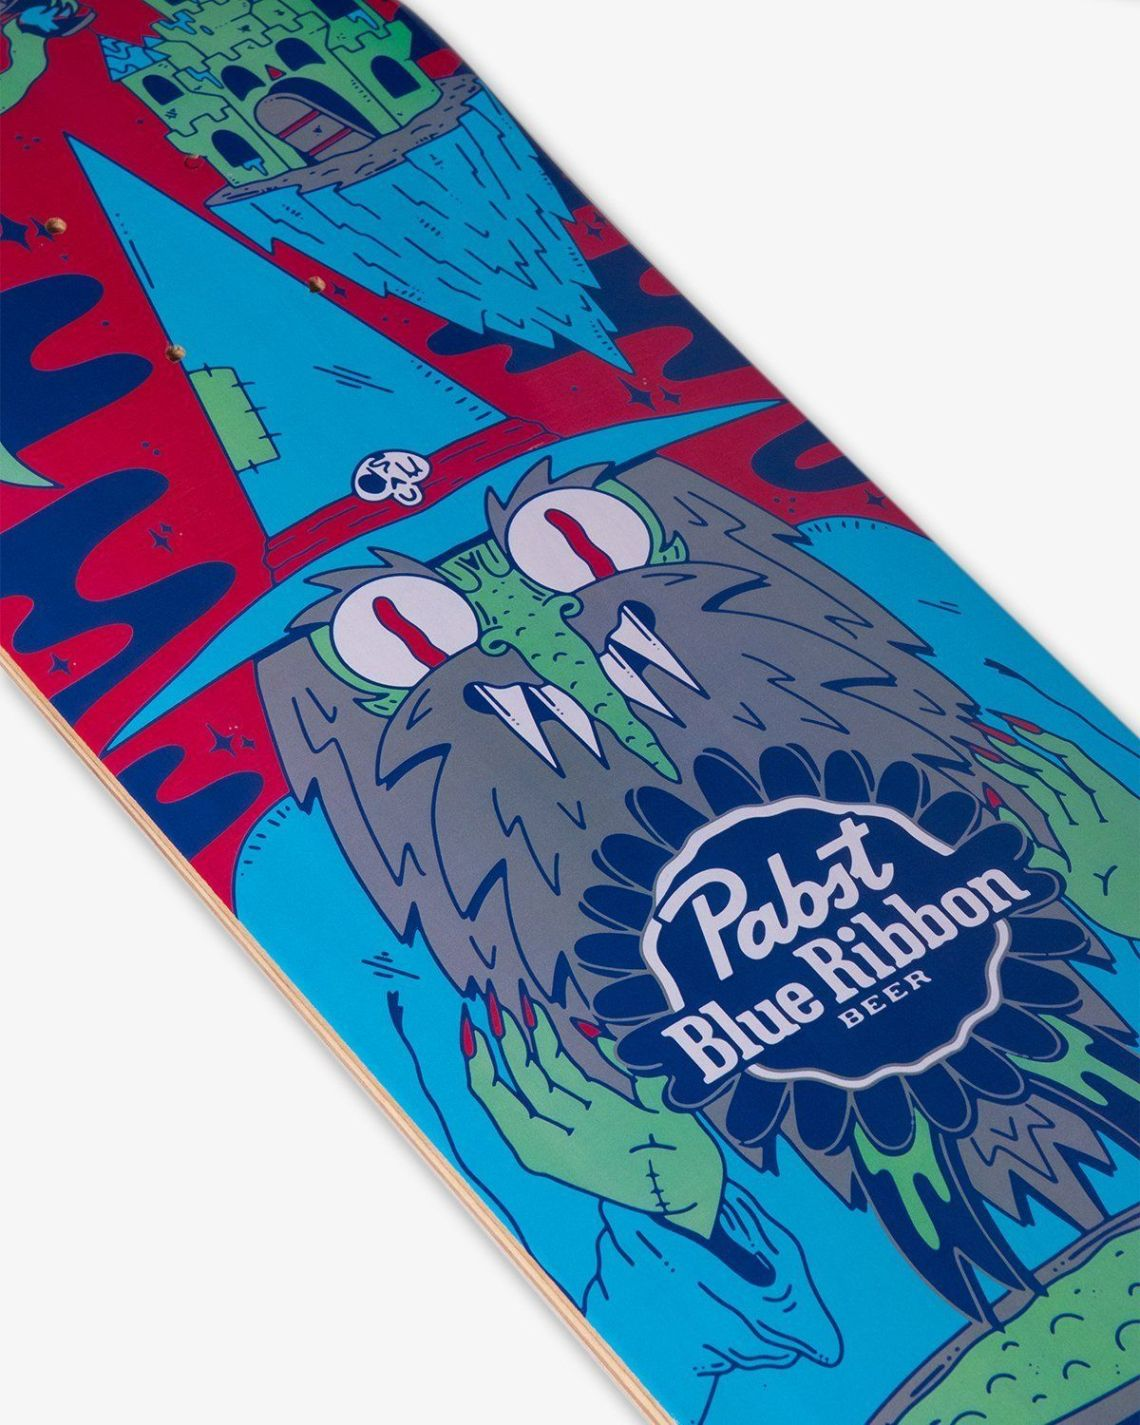 Ride With The Wizard Skateboard By Dakota Cates For Pabst Blue Ribbon 2